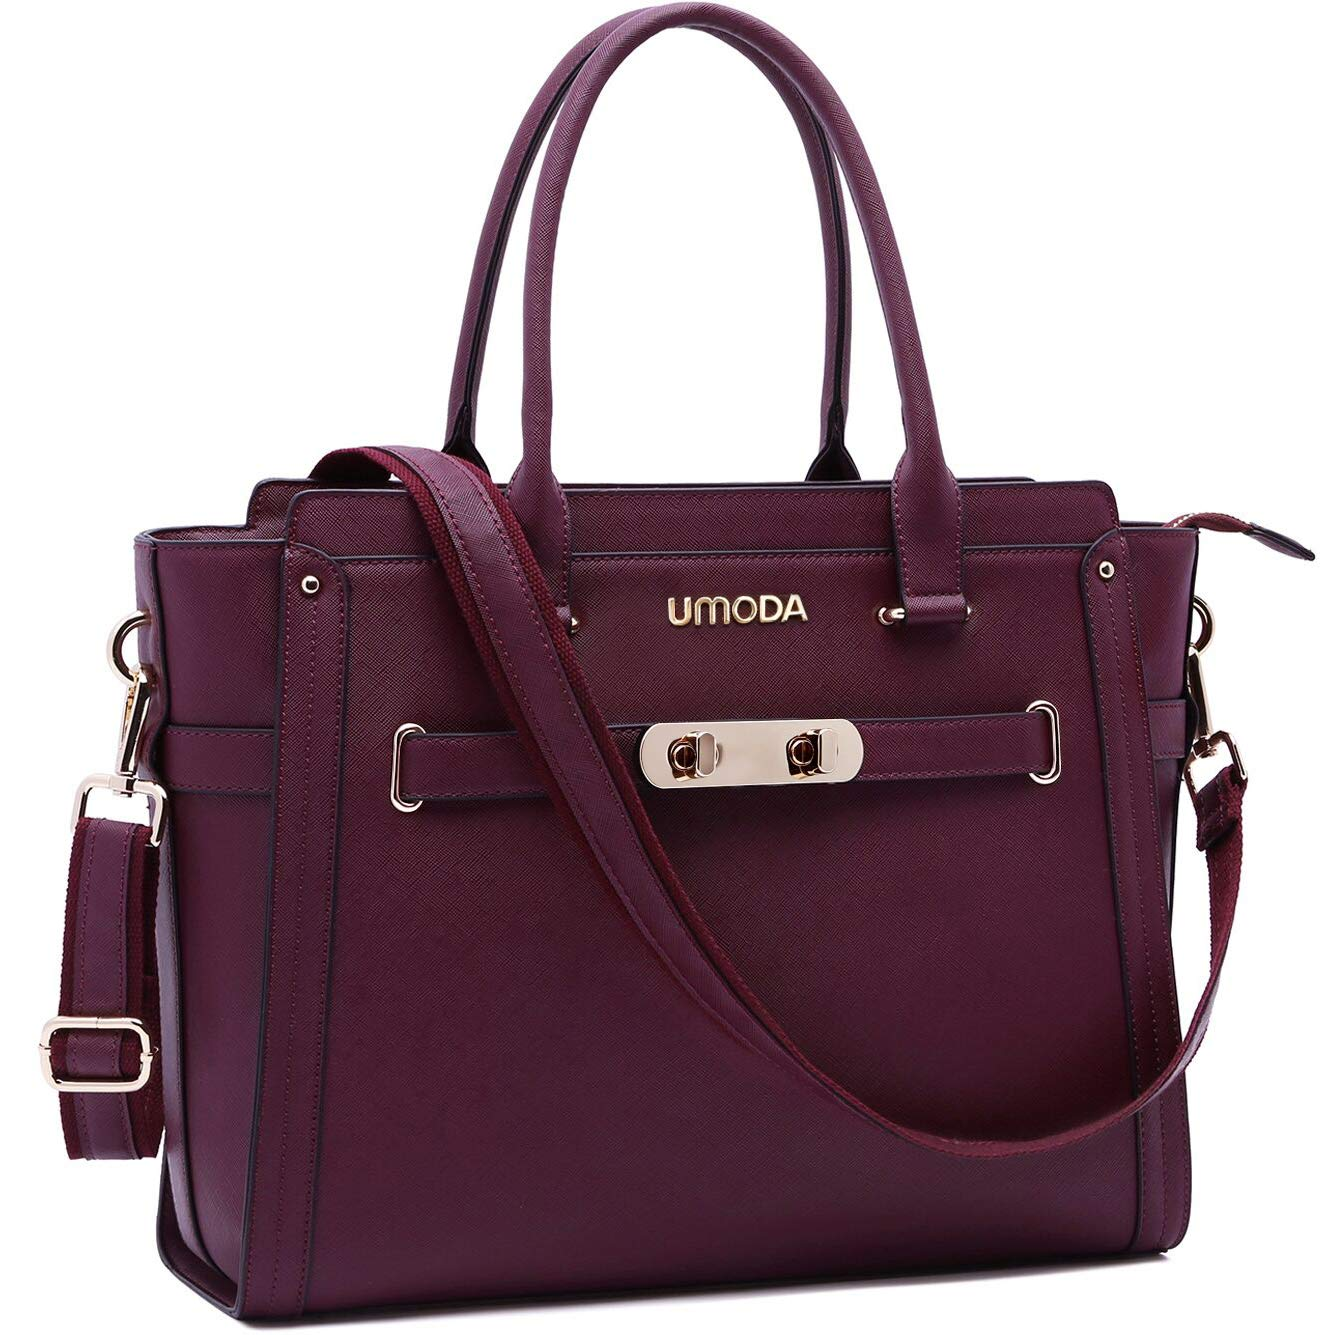 Laptop Bag for Women,15.6 Inch Multi Pocket Padded Laptop Tote Bag,Padlock Design Computer Bags for Women,Best Mother's Day Gift(Burgundy)